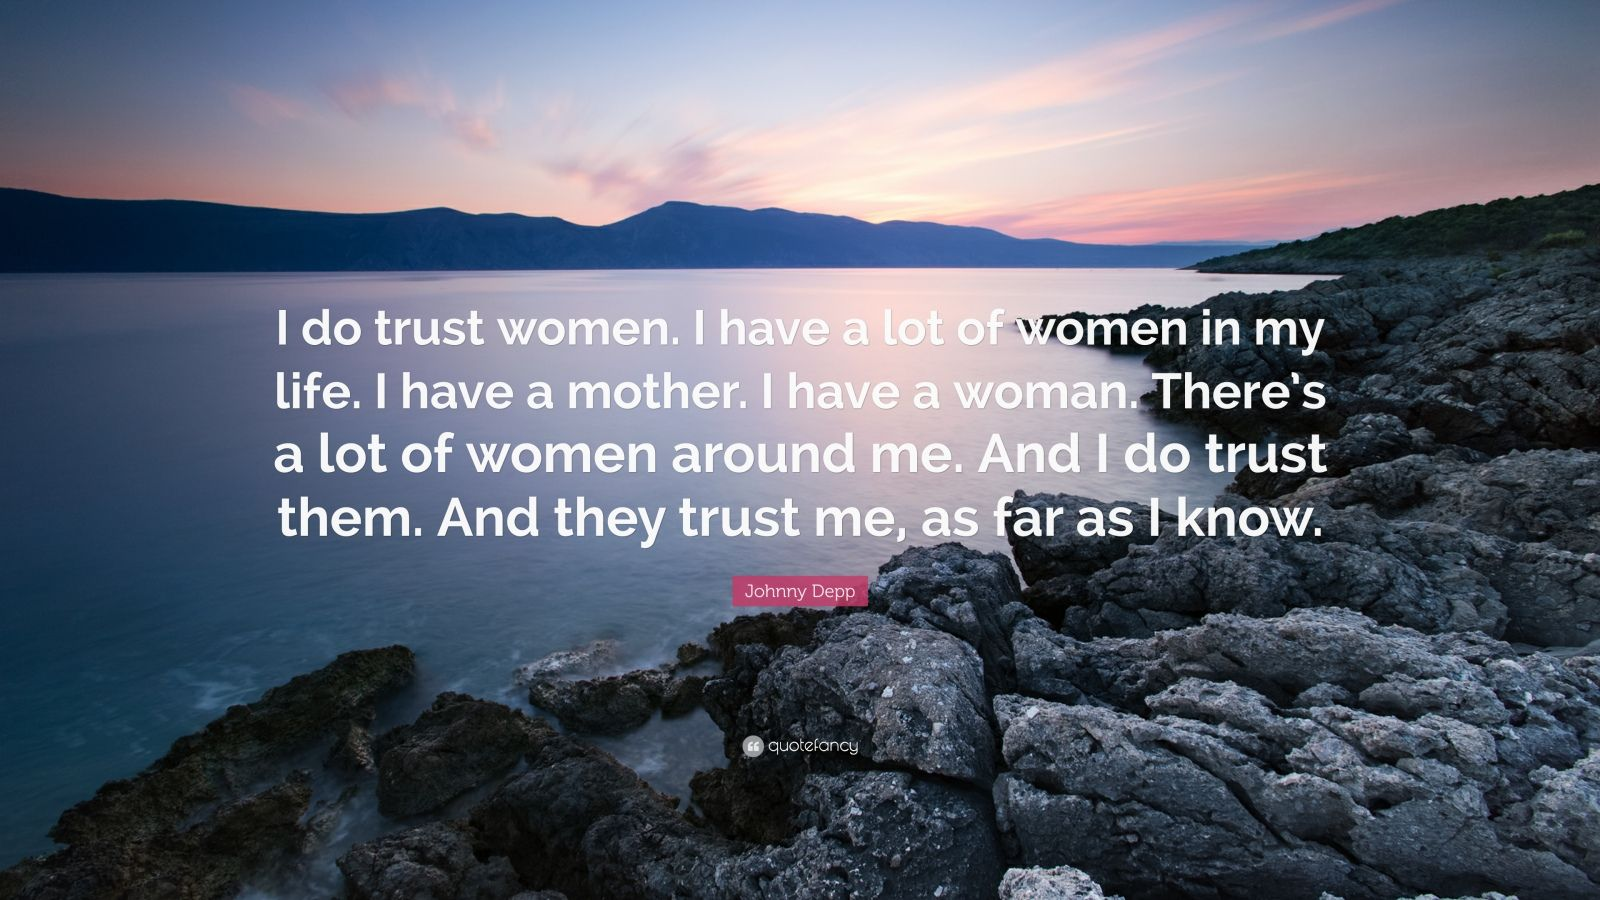 """Johnny Depp Quote: """"I do trust women. I have a lot of women in my life. I have a mother. I have a woman. There's a lot of women around me. And I do trust them. And they trust me, as far as I know."""""""